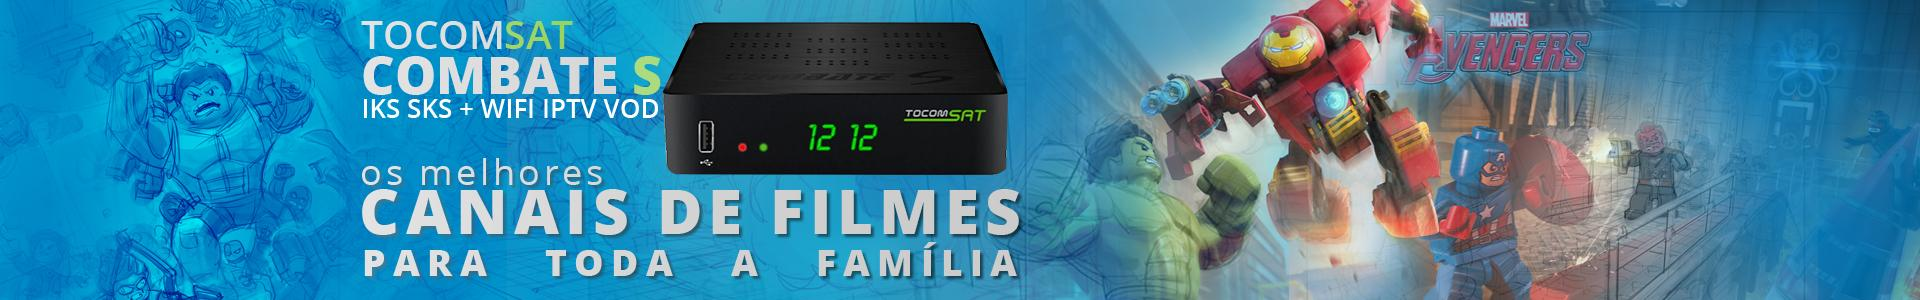 TOCOMSAT-COMBATE-S